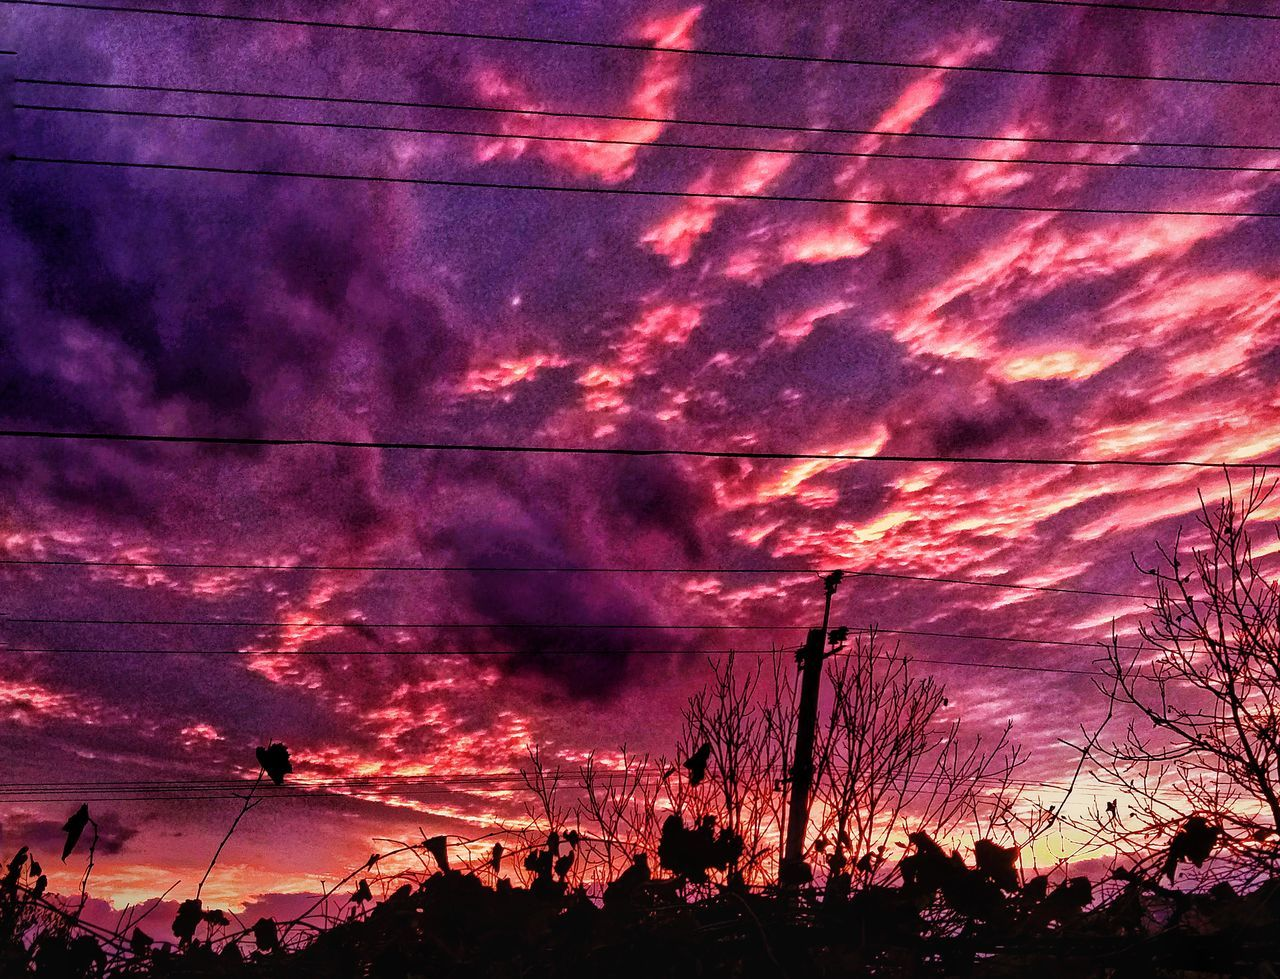 sky, sunset, silhouette, cloud - sky, nature, beauty in nature, dramatic sky, scenics, low angle view, no people, outdoors, tree, night, mountain, electricity pylon